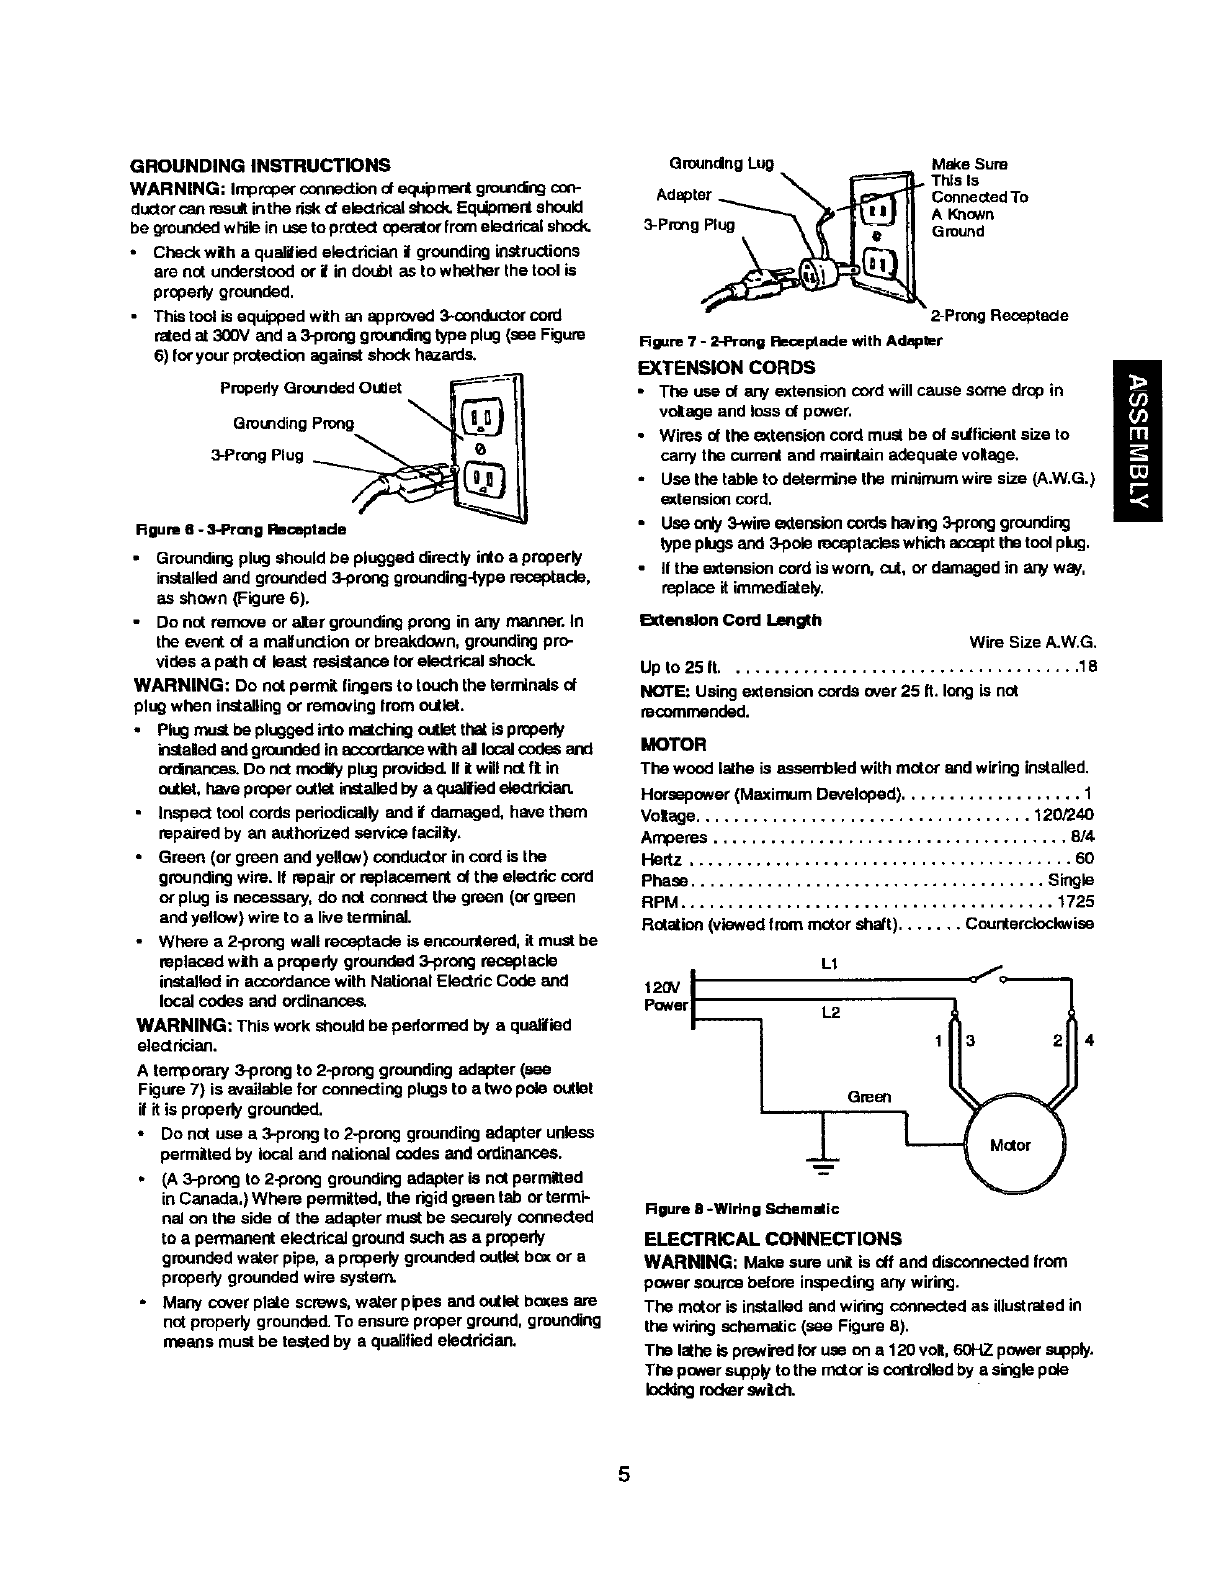 Craftsman 351217120 User Manual Wood Lathe Manuals And Guides L0212040 White Green Black 3 Prong Plug Wiring Diagram Grounding Instructions